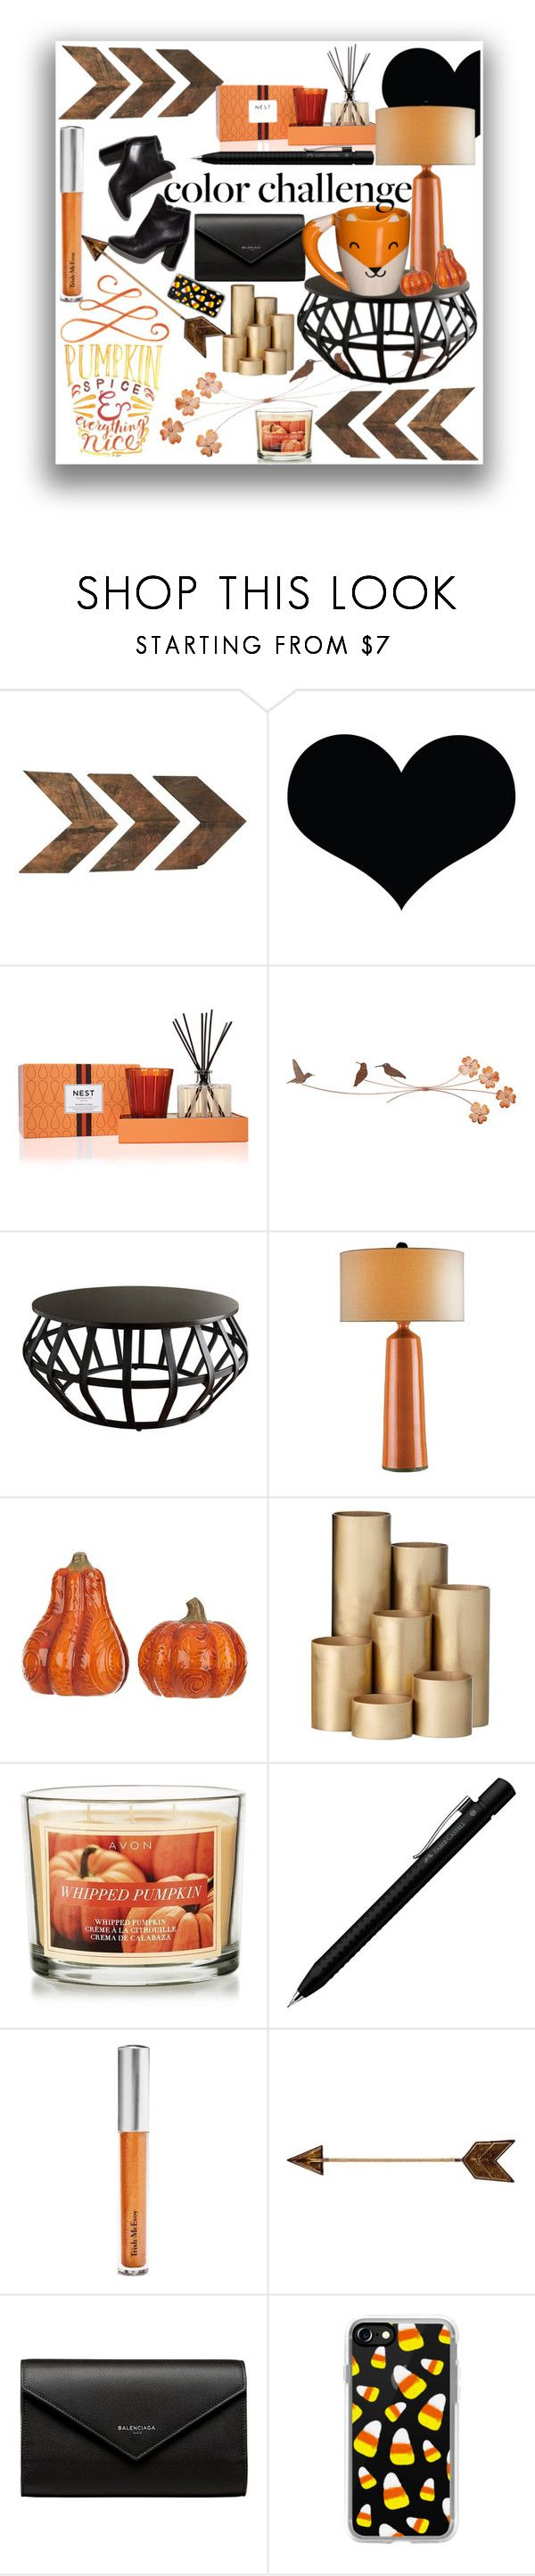 """""""Black and Orange #colorchallenge Contest Entry"""" by charmmurphy ❤ liked on Polyvore featuring interior, interiors, interior design, home, home decor, interior decorating, WALL, Nest Fragrances, Tribecca Home and Currey & Company"""